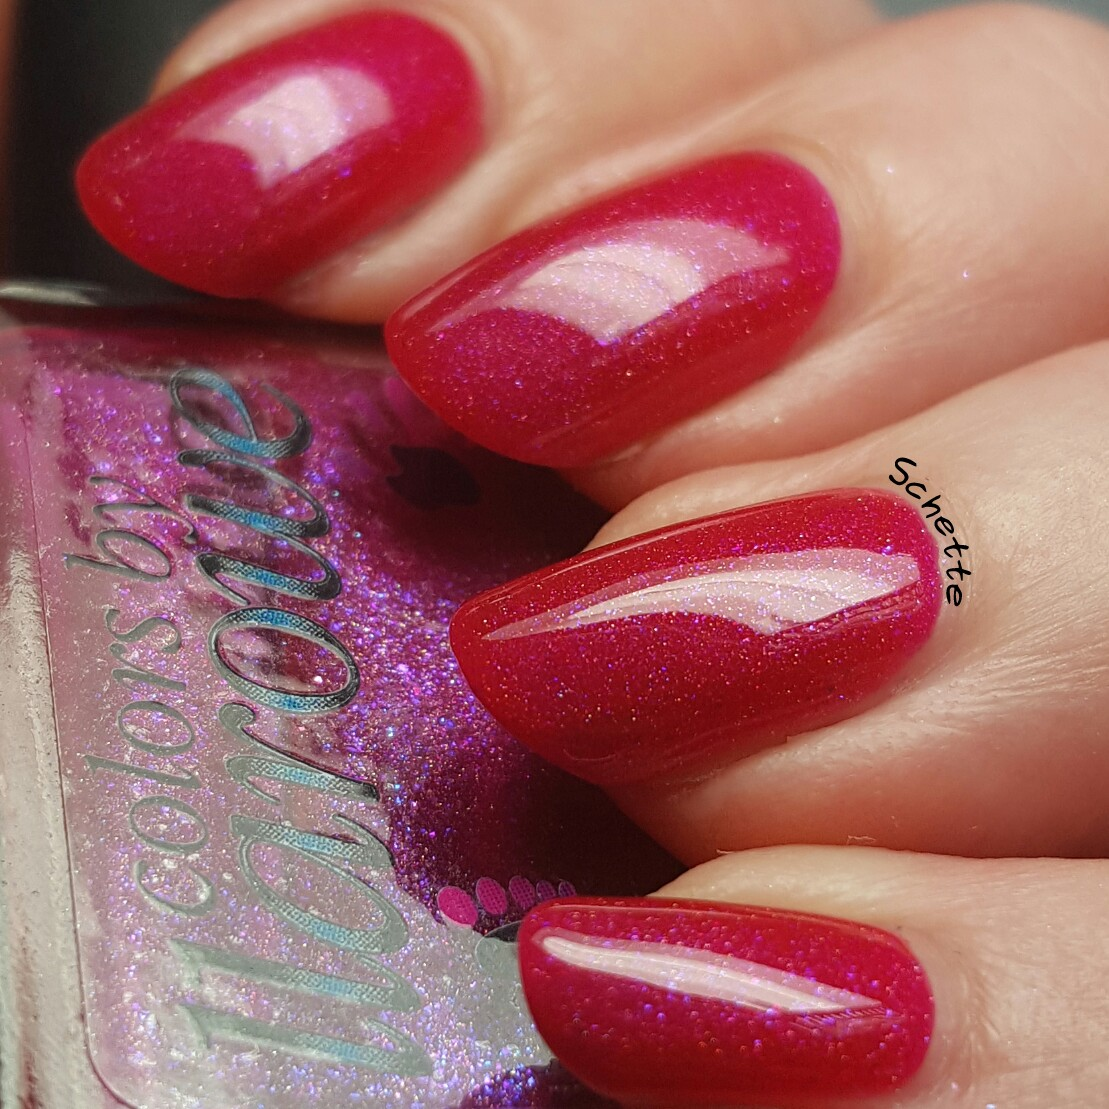 Colors by Llarowe : Sparkles are girl's best friends